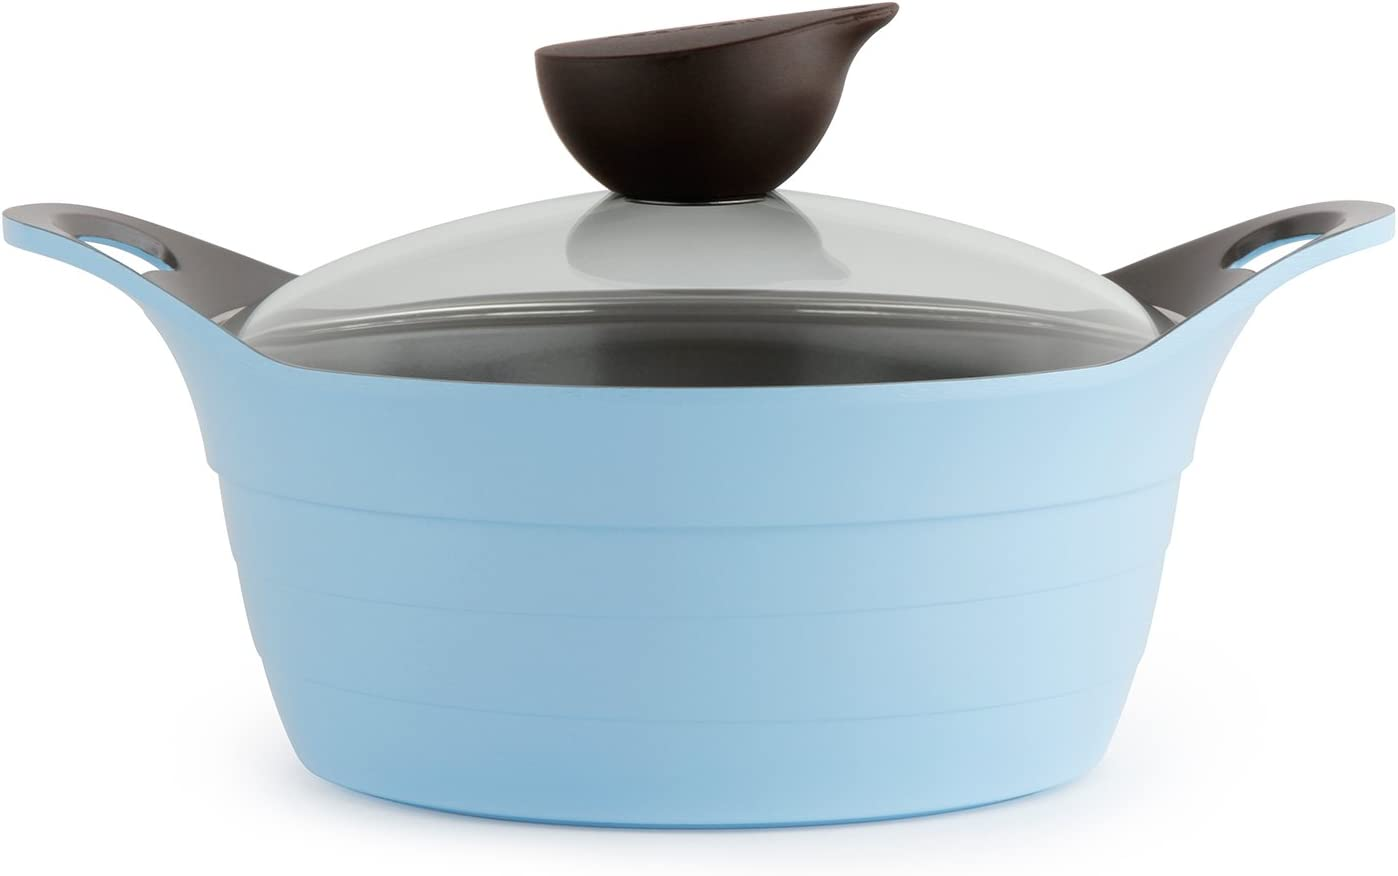 Neoflam Eela 2.5 QT Ceramic Nonstick Stockpot with Glass Lid in Light Blue